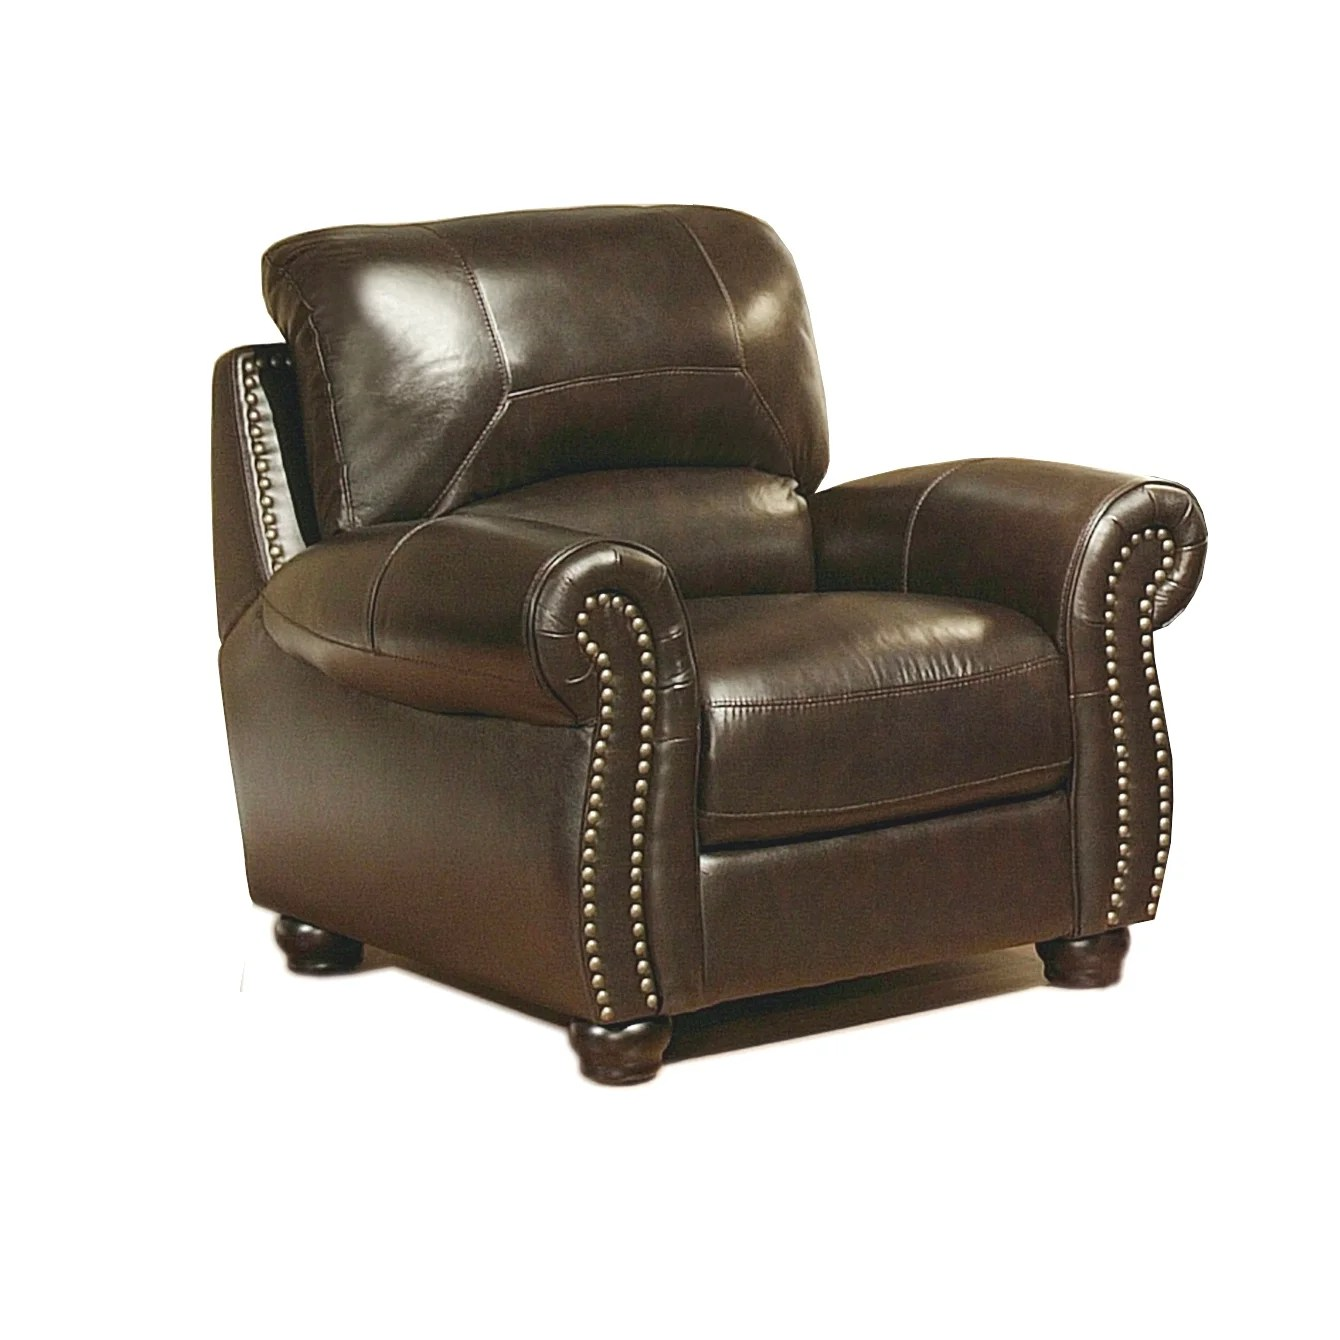 Abbyson Living Broadway Italian Leather Chair  Reviews